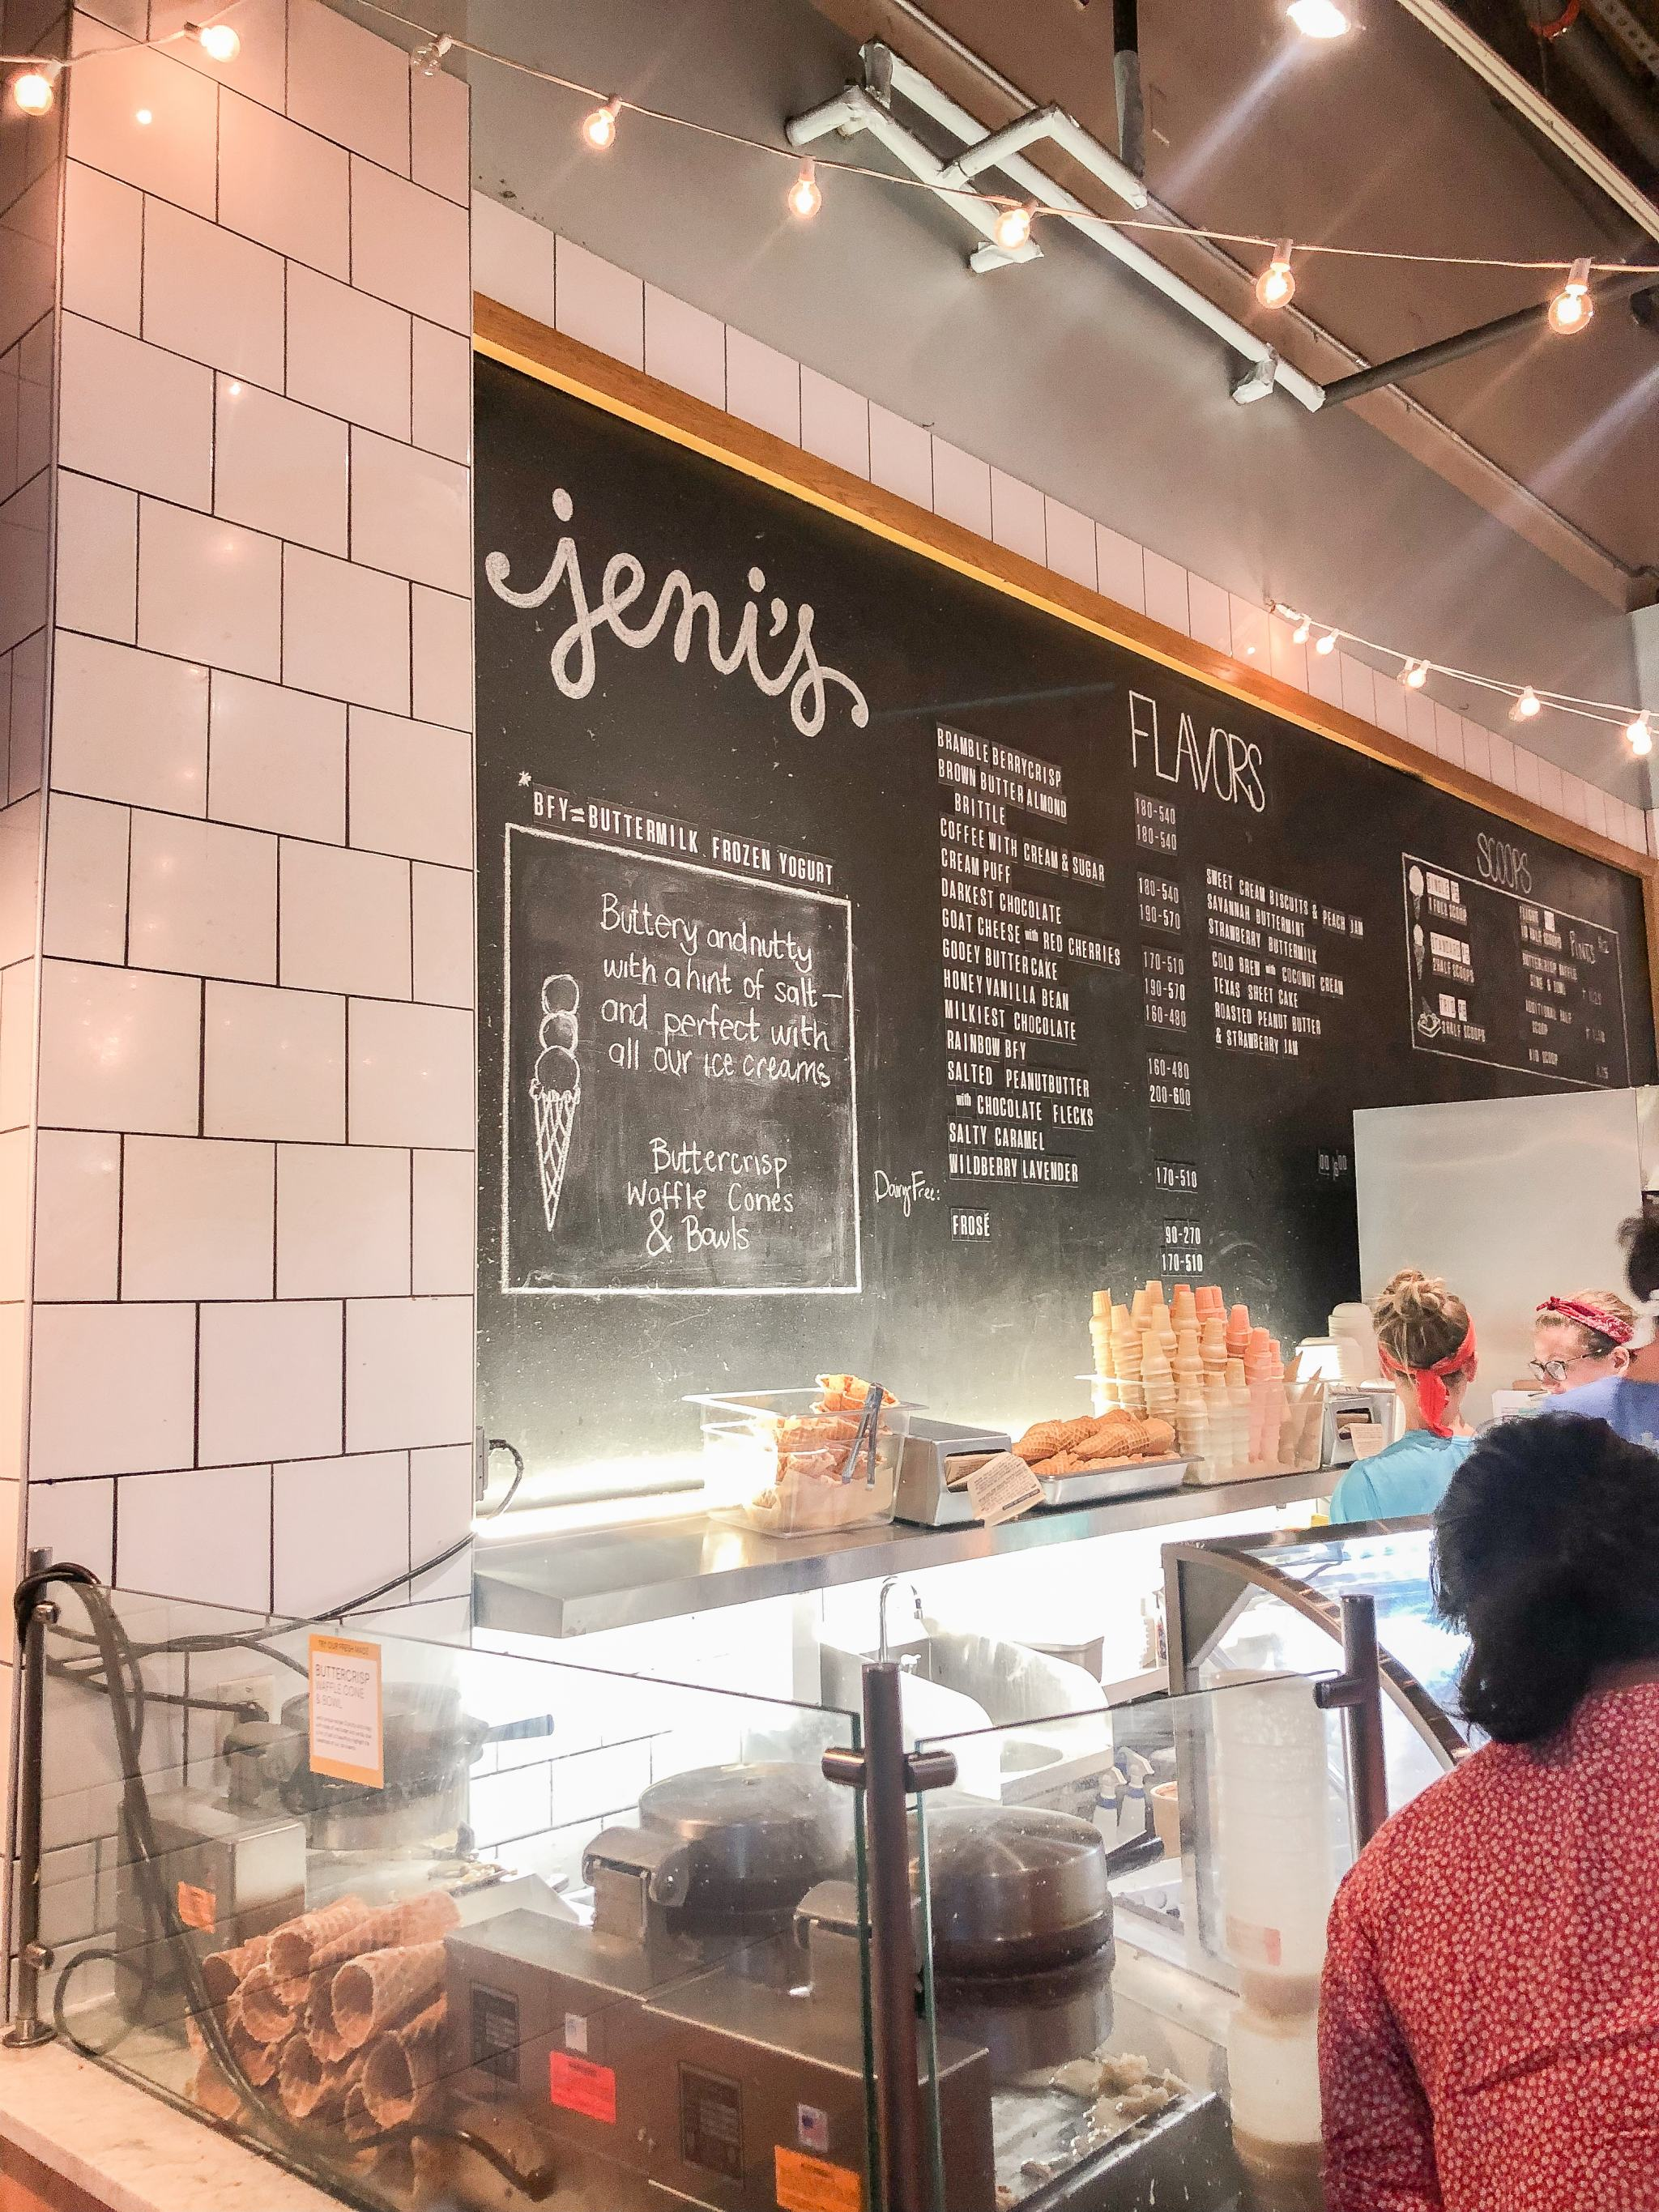 jenis ice cream charleston